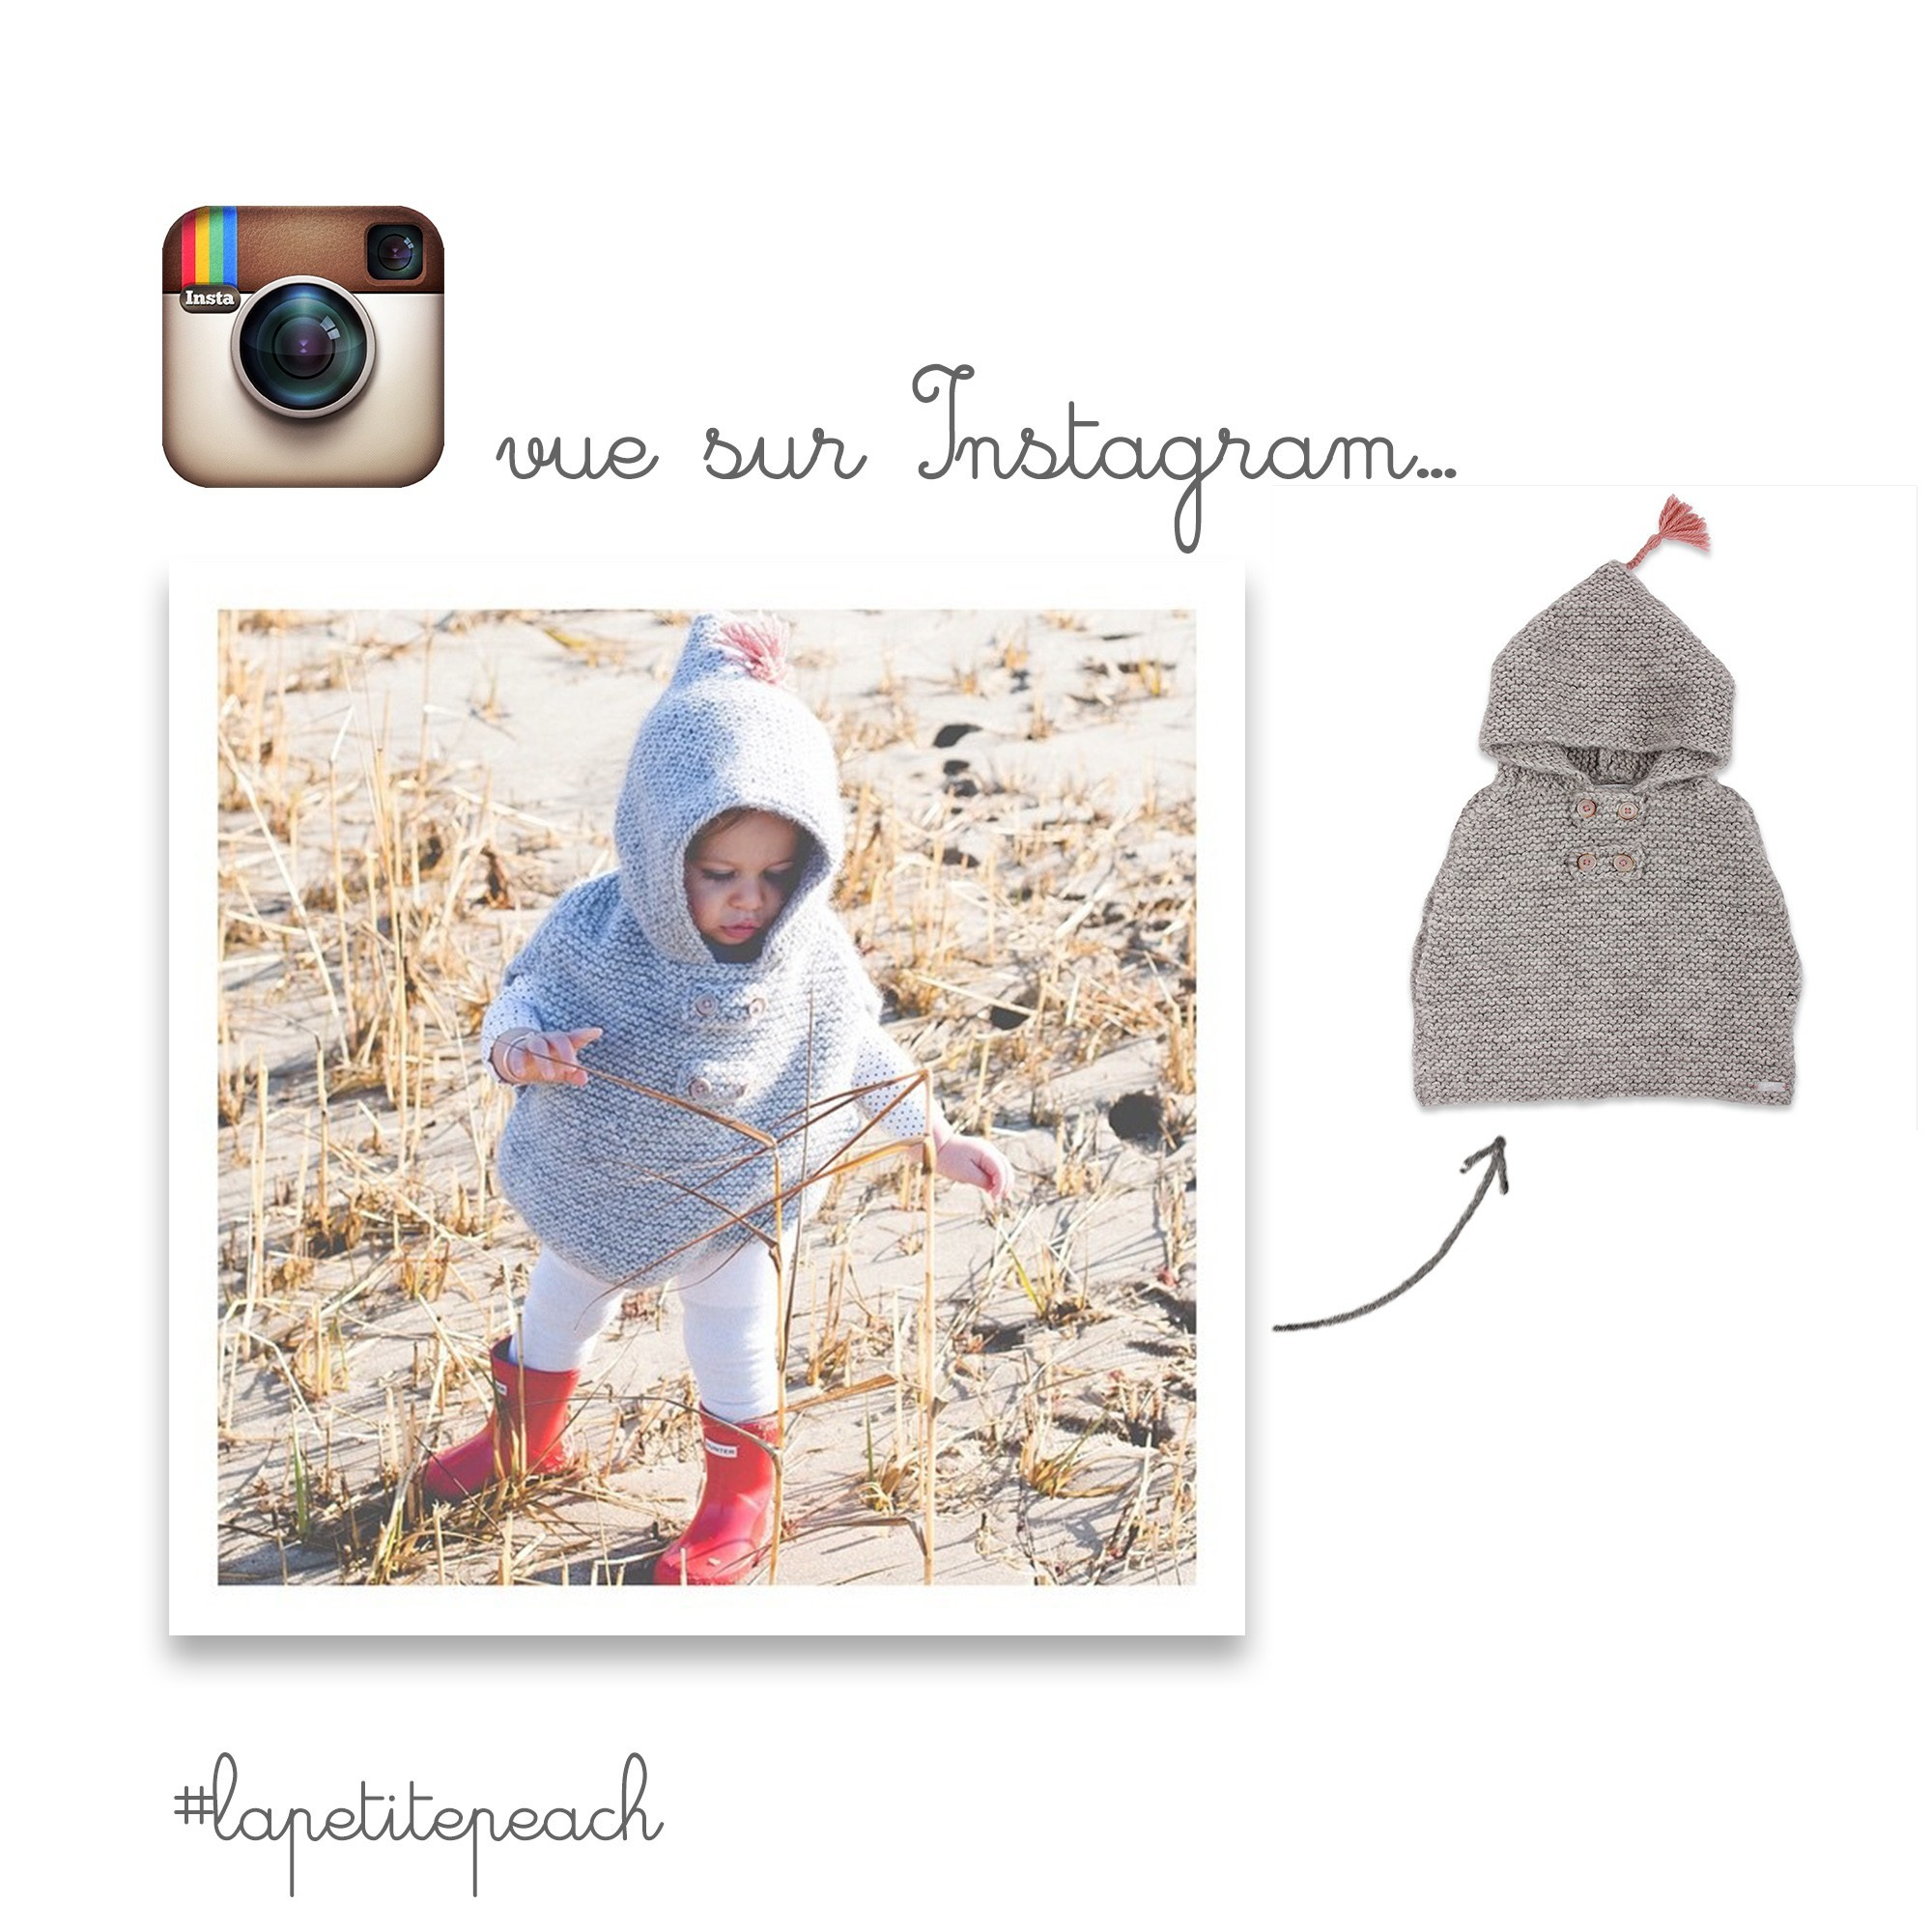 Florentine cape seen in Instagram